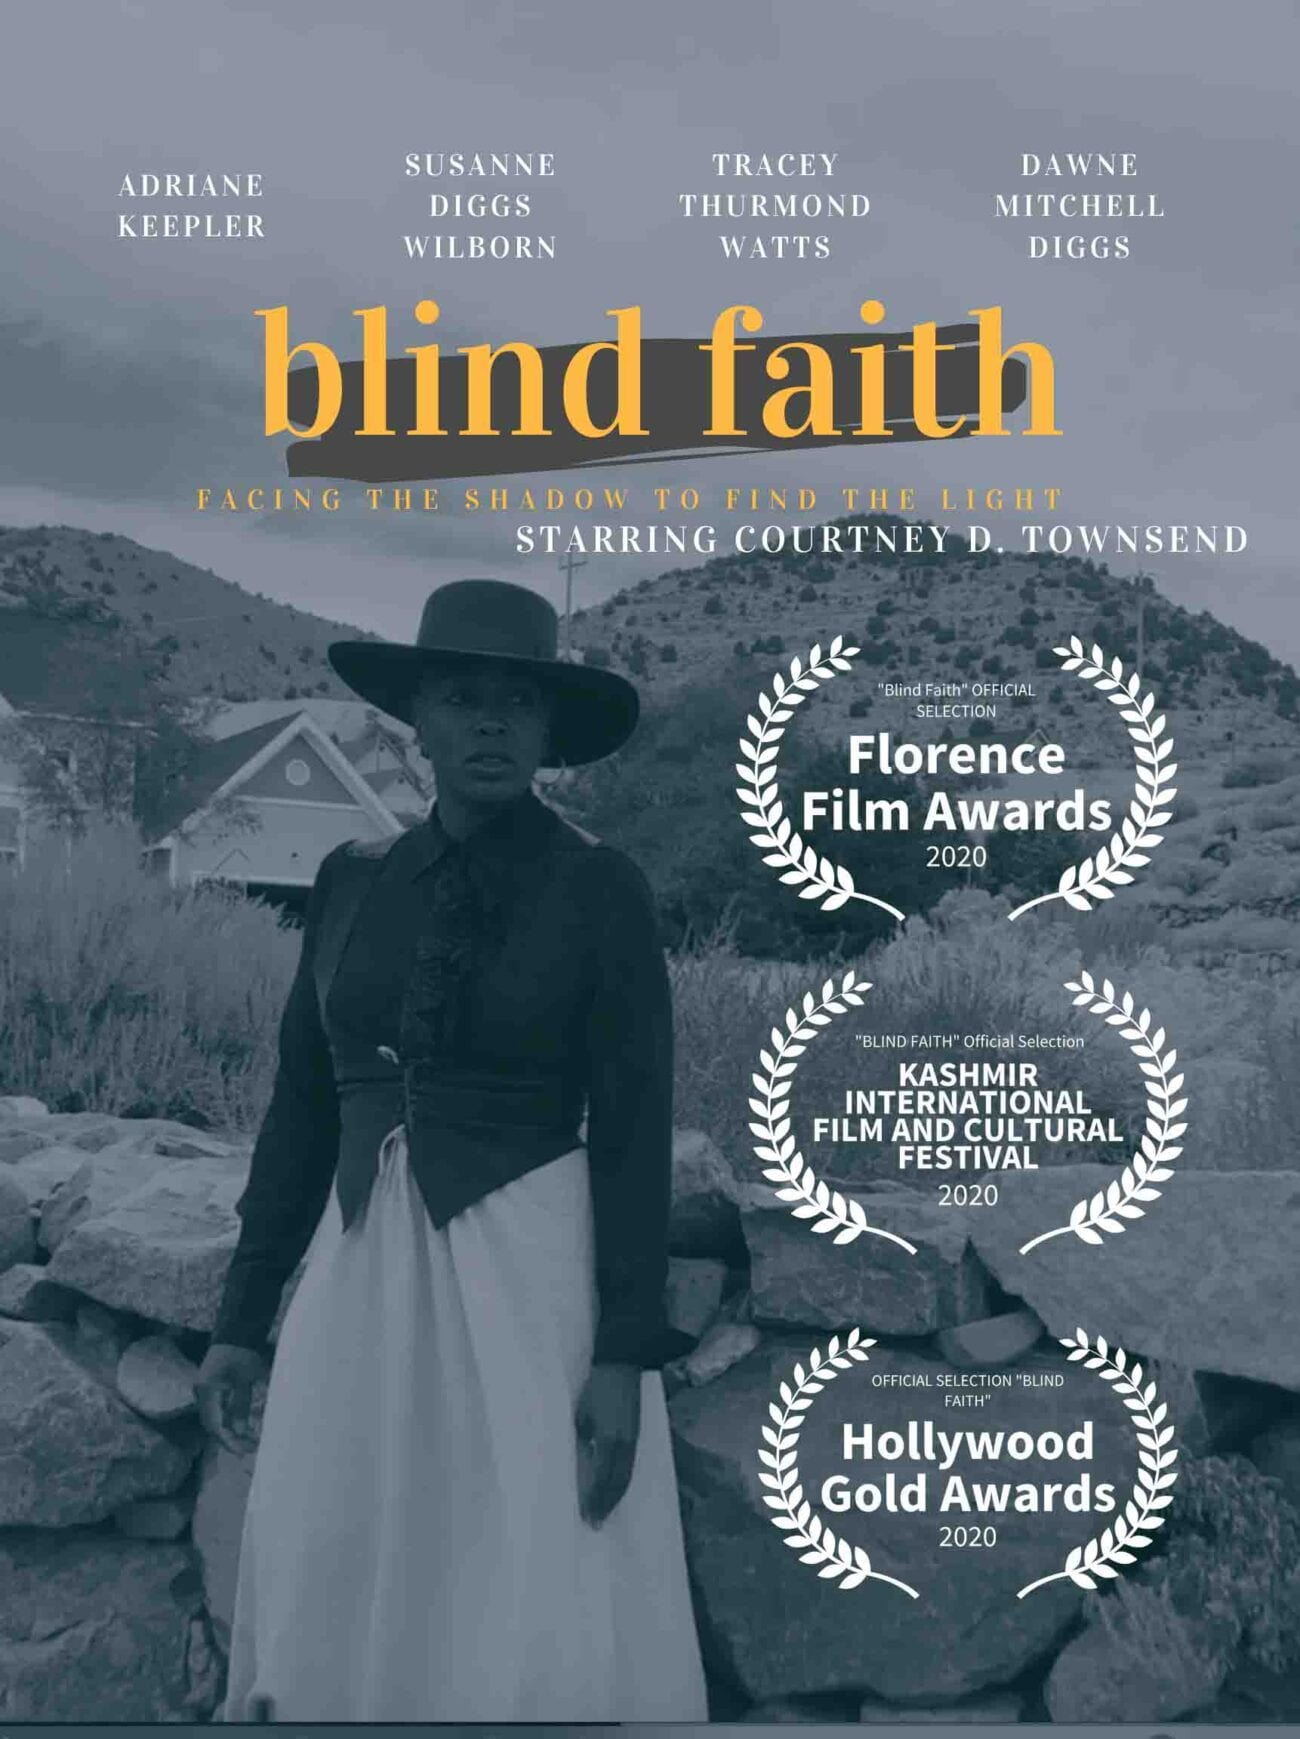 The new short film 'Blind Faith' starring Courtney Townsend is a Western that tells the story of the wives of cowboys.